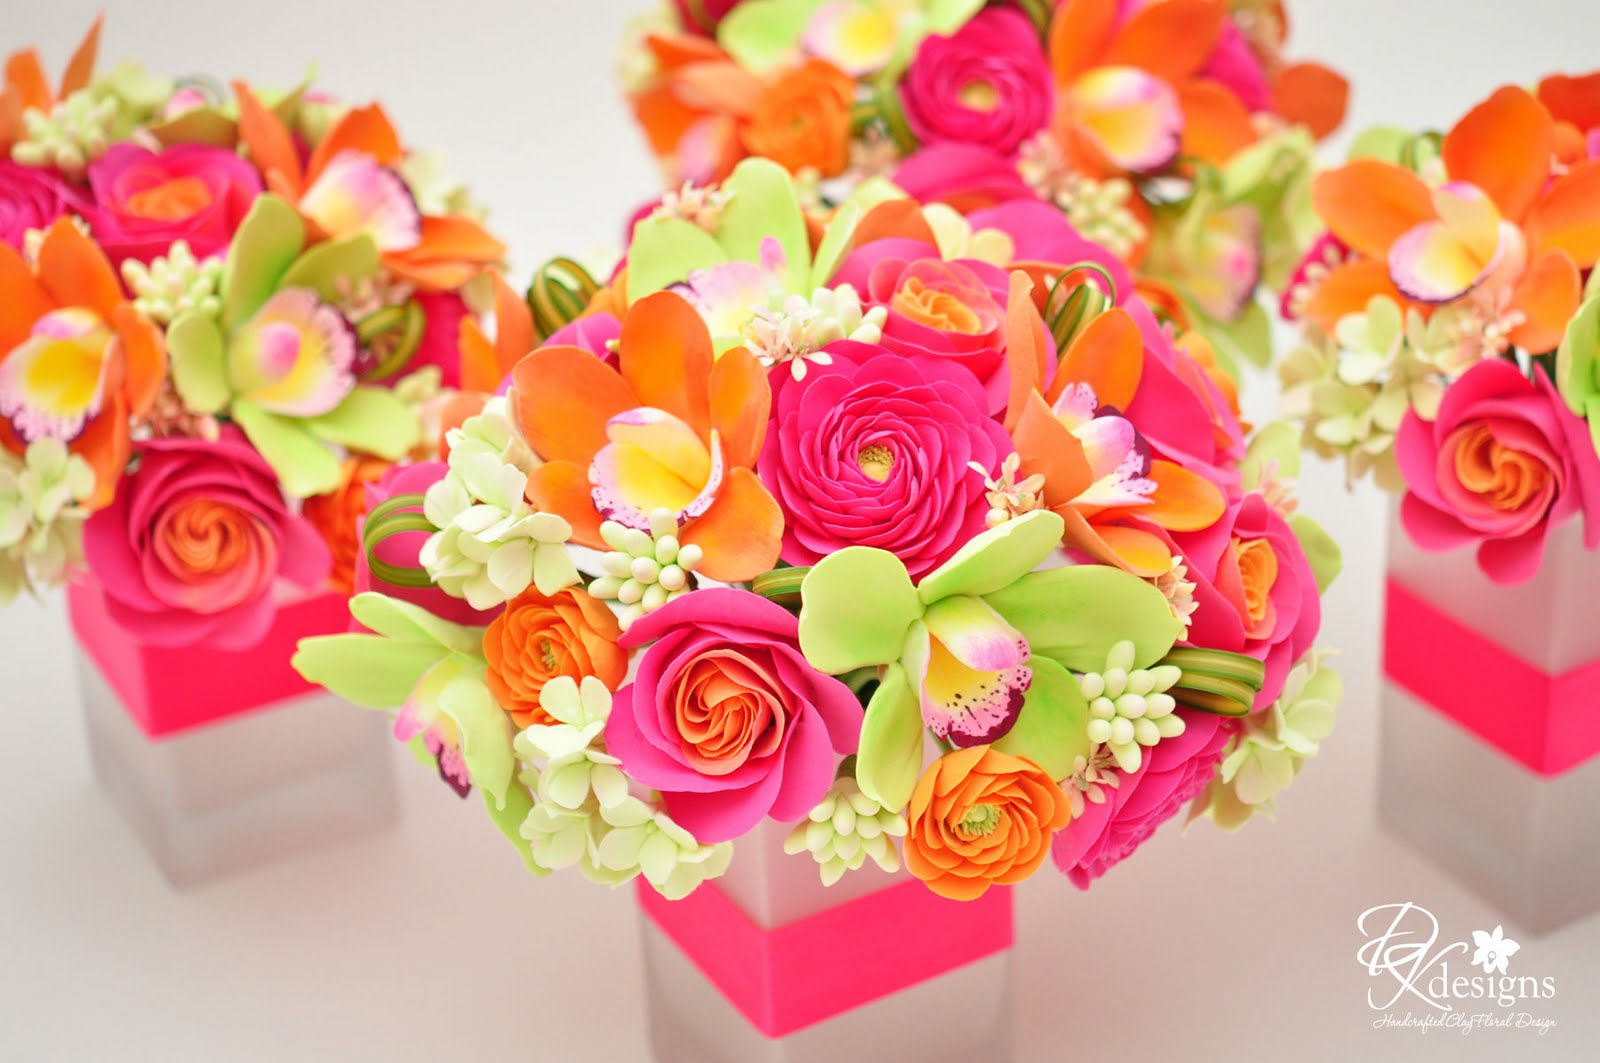 DK Designs: Pink, Orange And Green Flowers For A